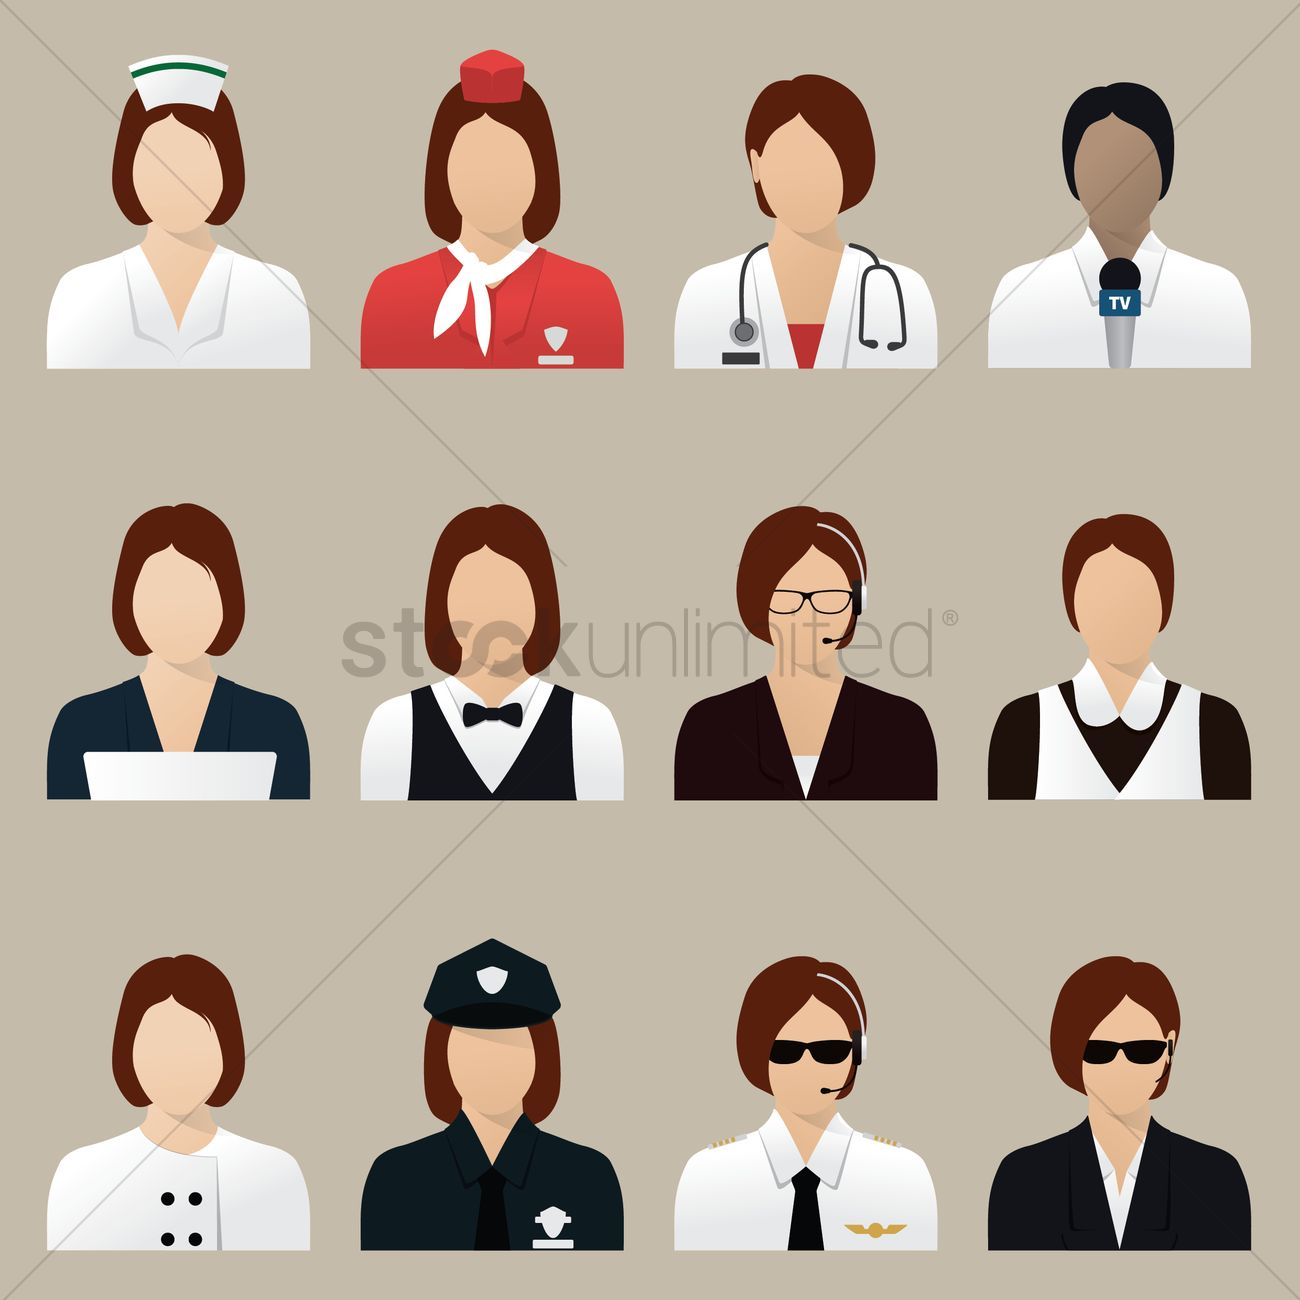 Professionals Academics: Set Of Professional Women Icons Vector Image